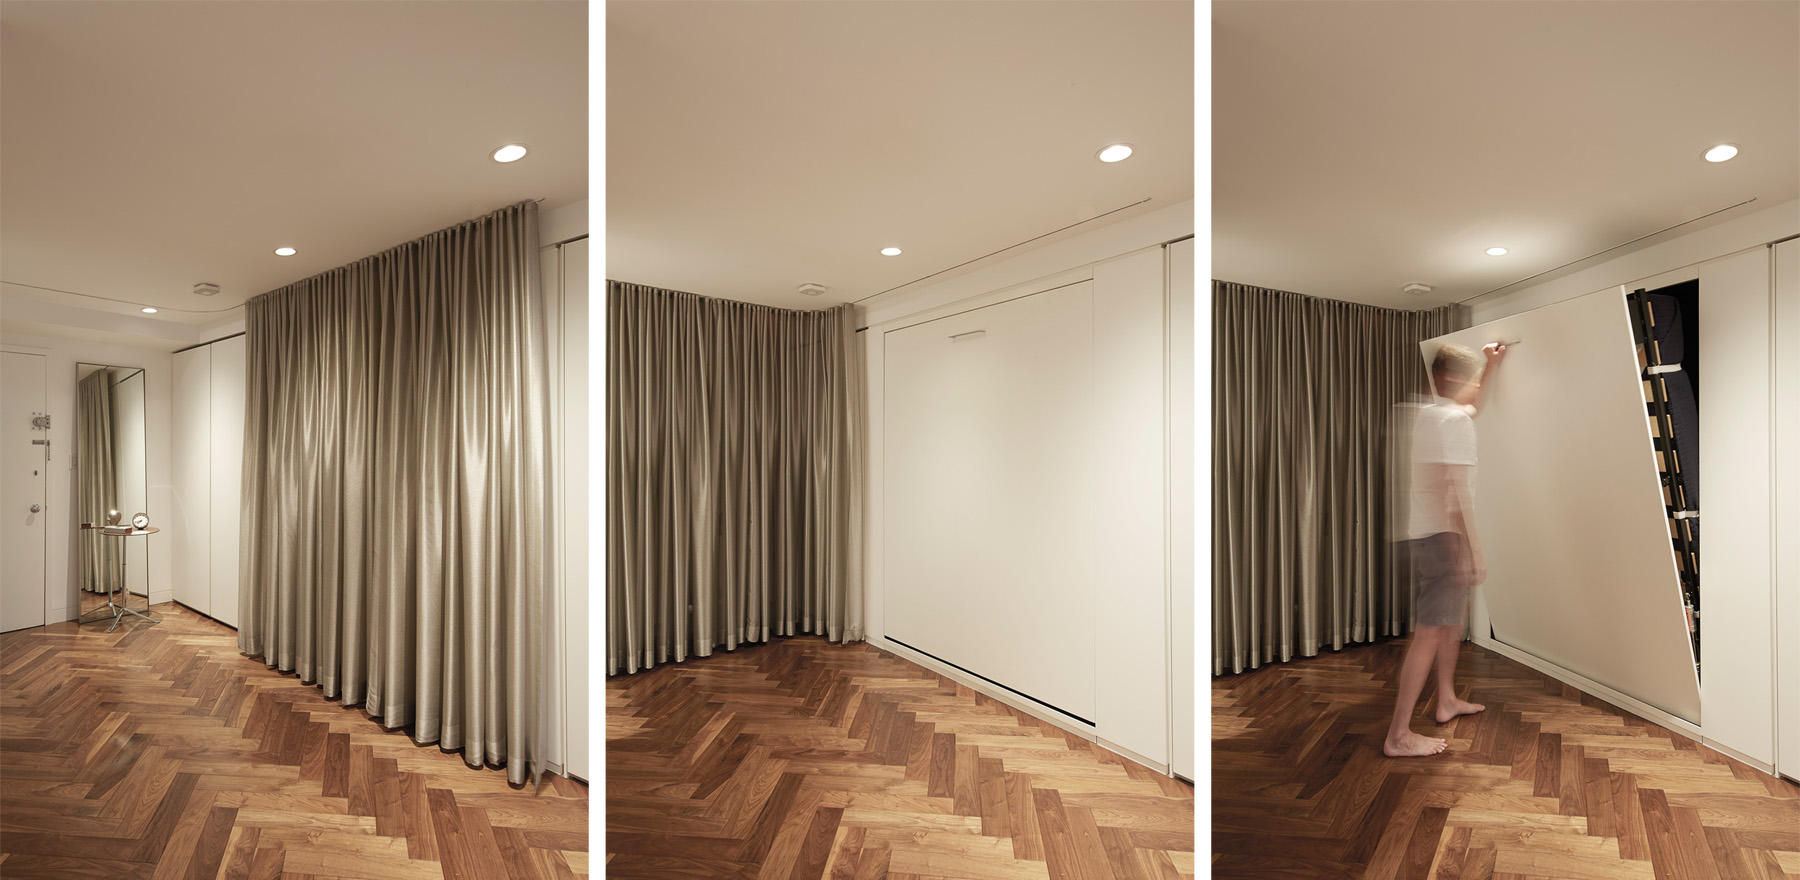 Stadt Architecture, Knoll, curtain, Hafele, Murphy Bed, STADT